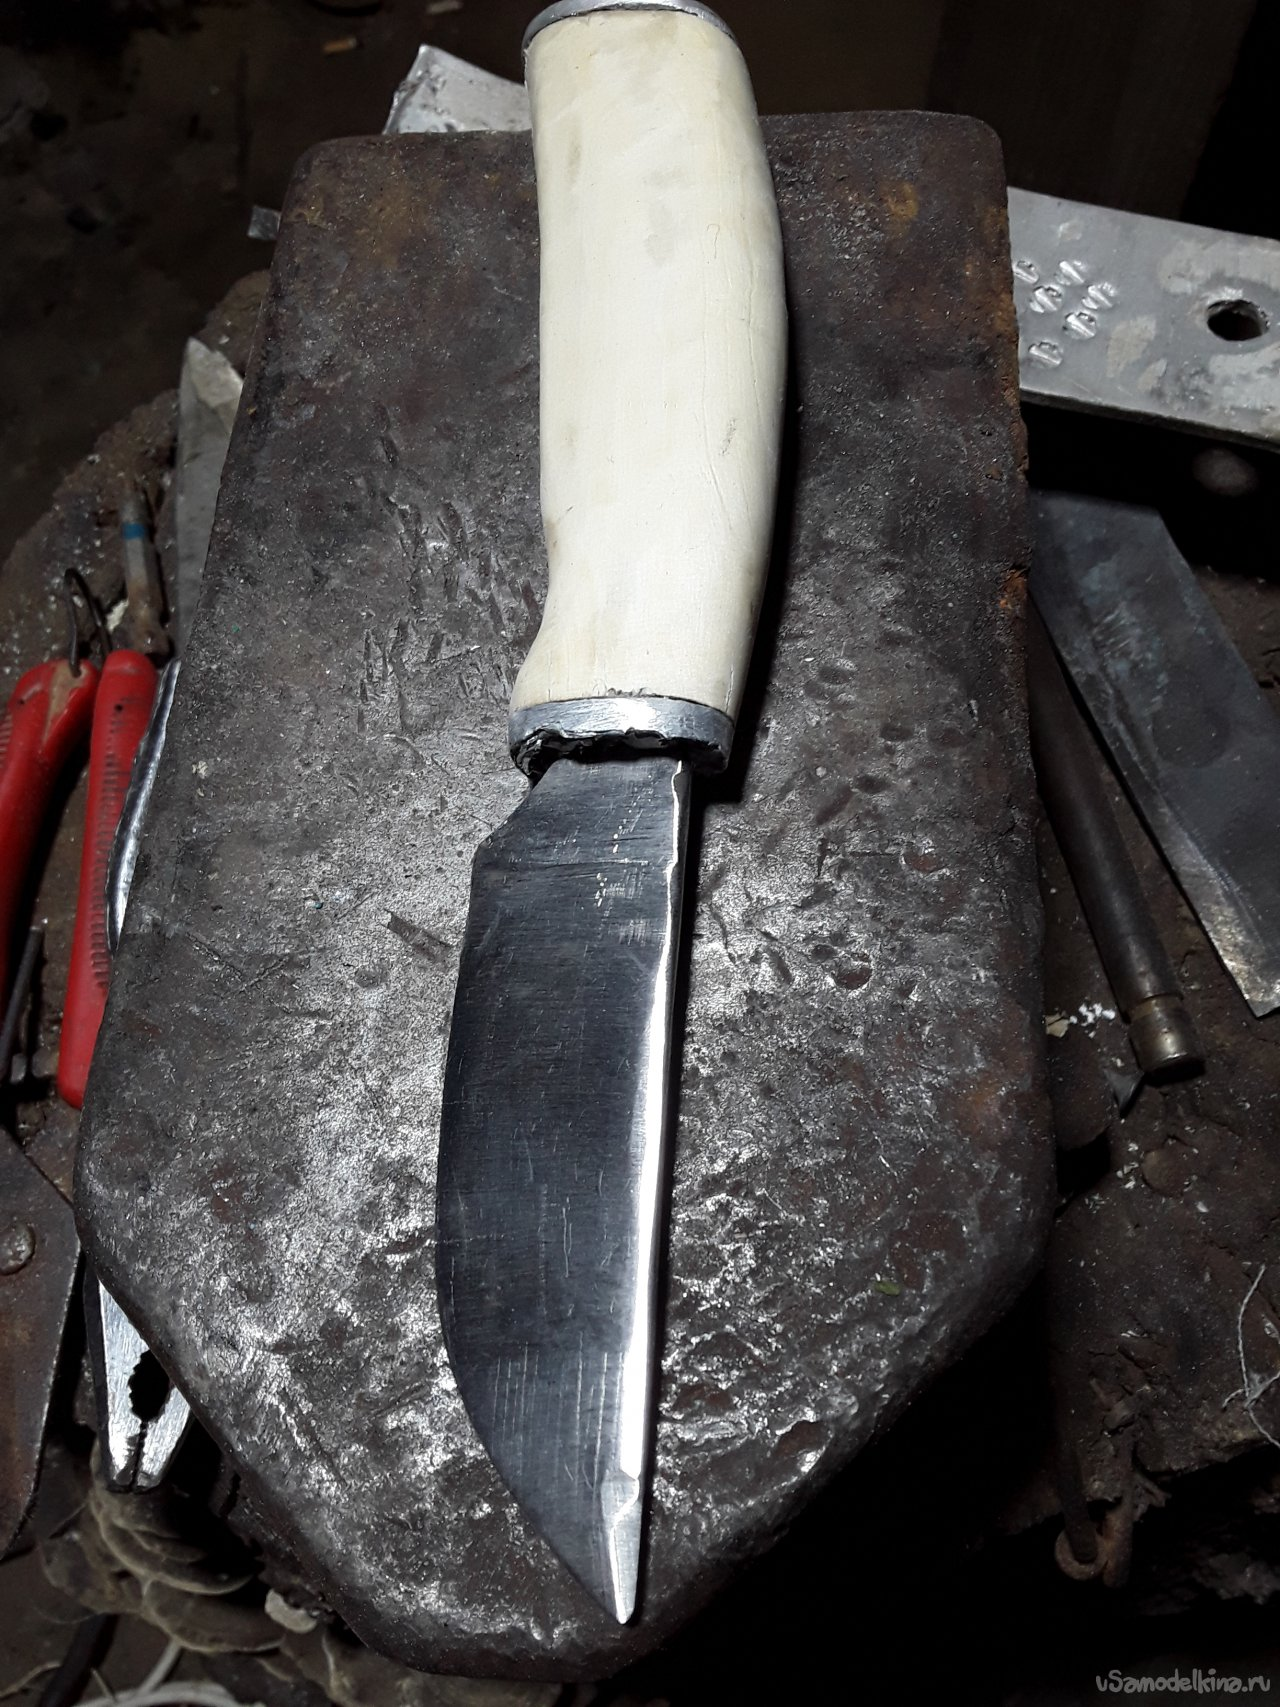 Knife from the exhaust valve of the locomotive